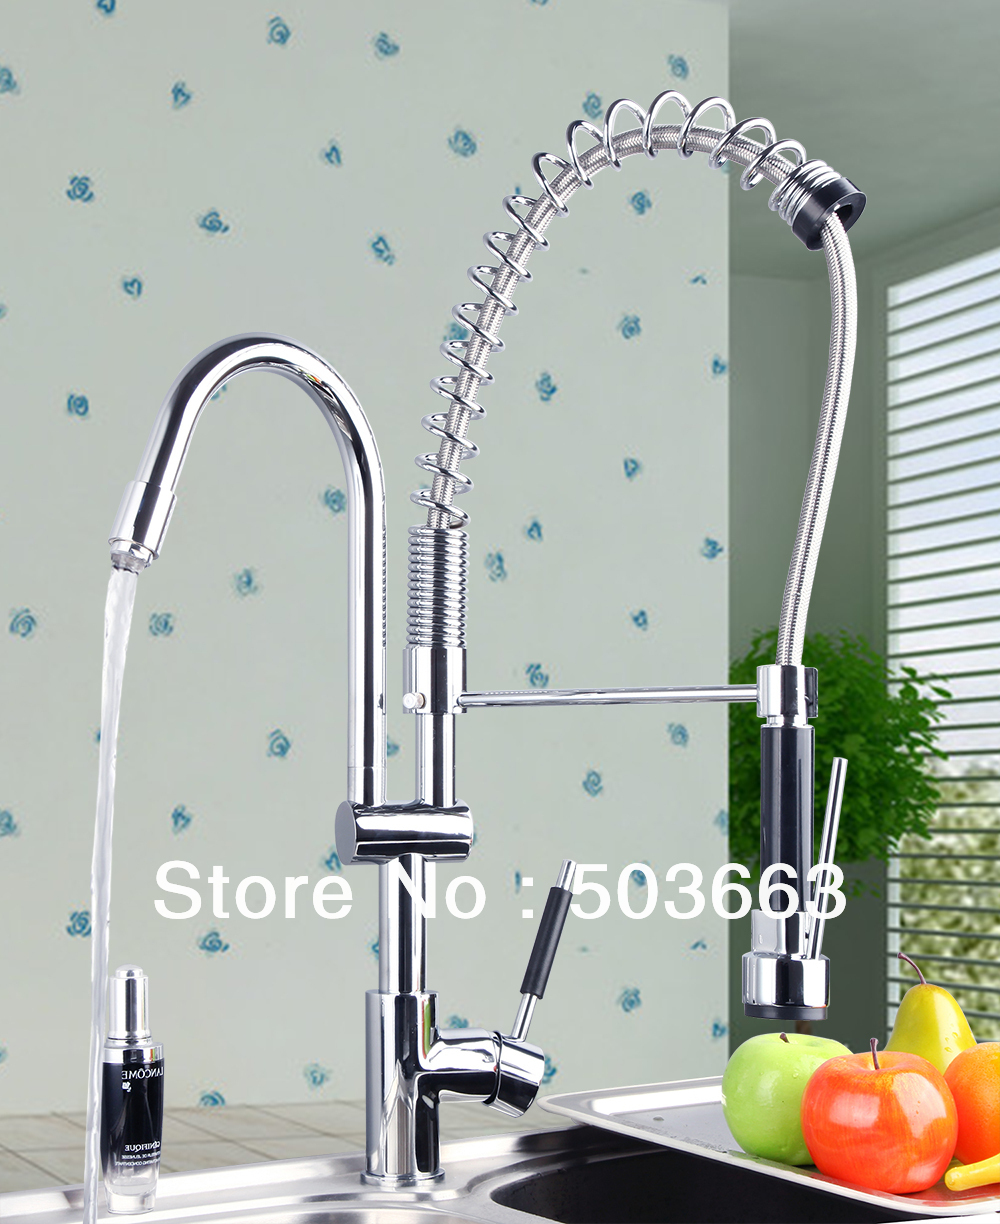 Double Handles Free Chrome Brass Water Kitchen Faucet Swivel Spout Pull Out Vessel Sink Single Handle Mixer Tap MF-268 double handles free chrome brass water kitchen faucet swivel spout pull out vessel sink single handle mixer tap mf 268